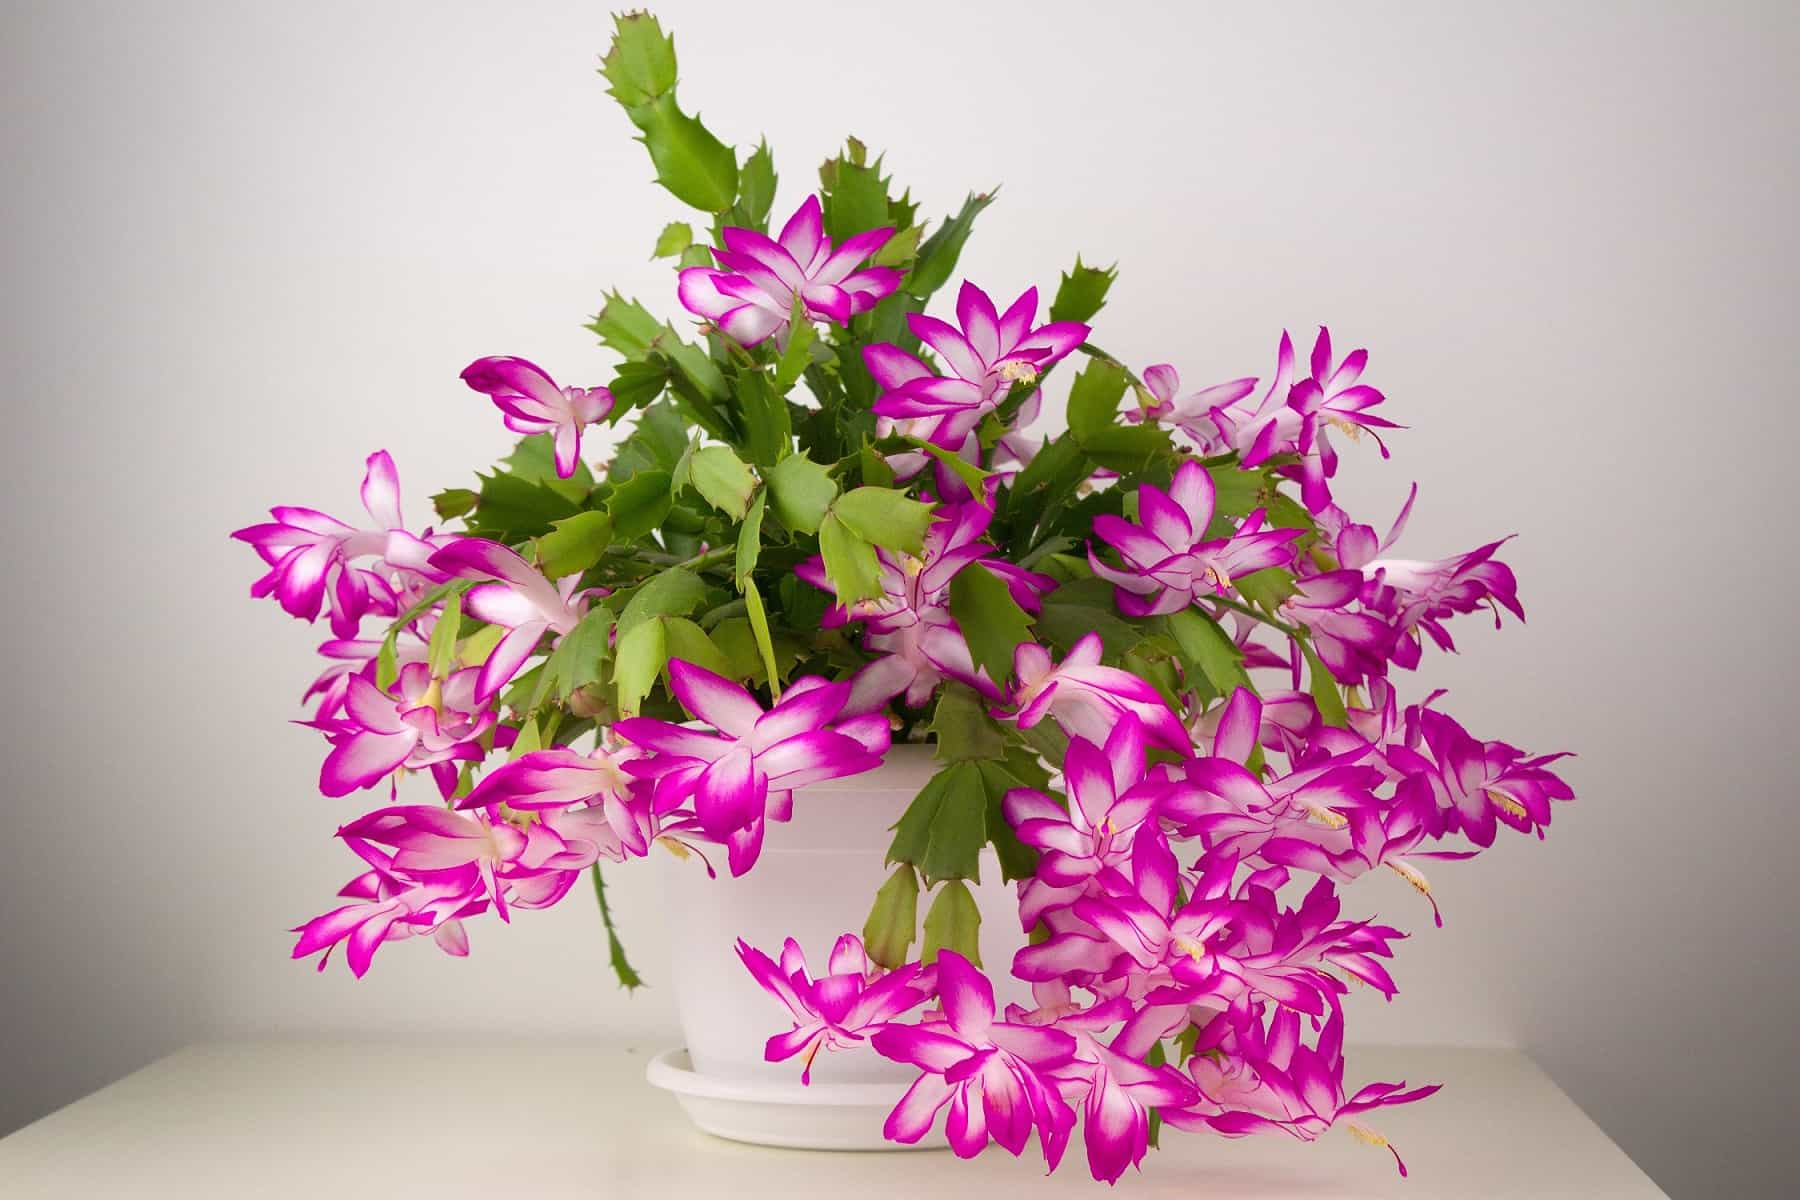 The Definitive Guide to Christmas Cactus Care